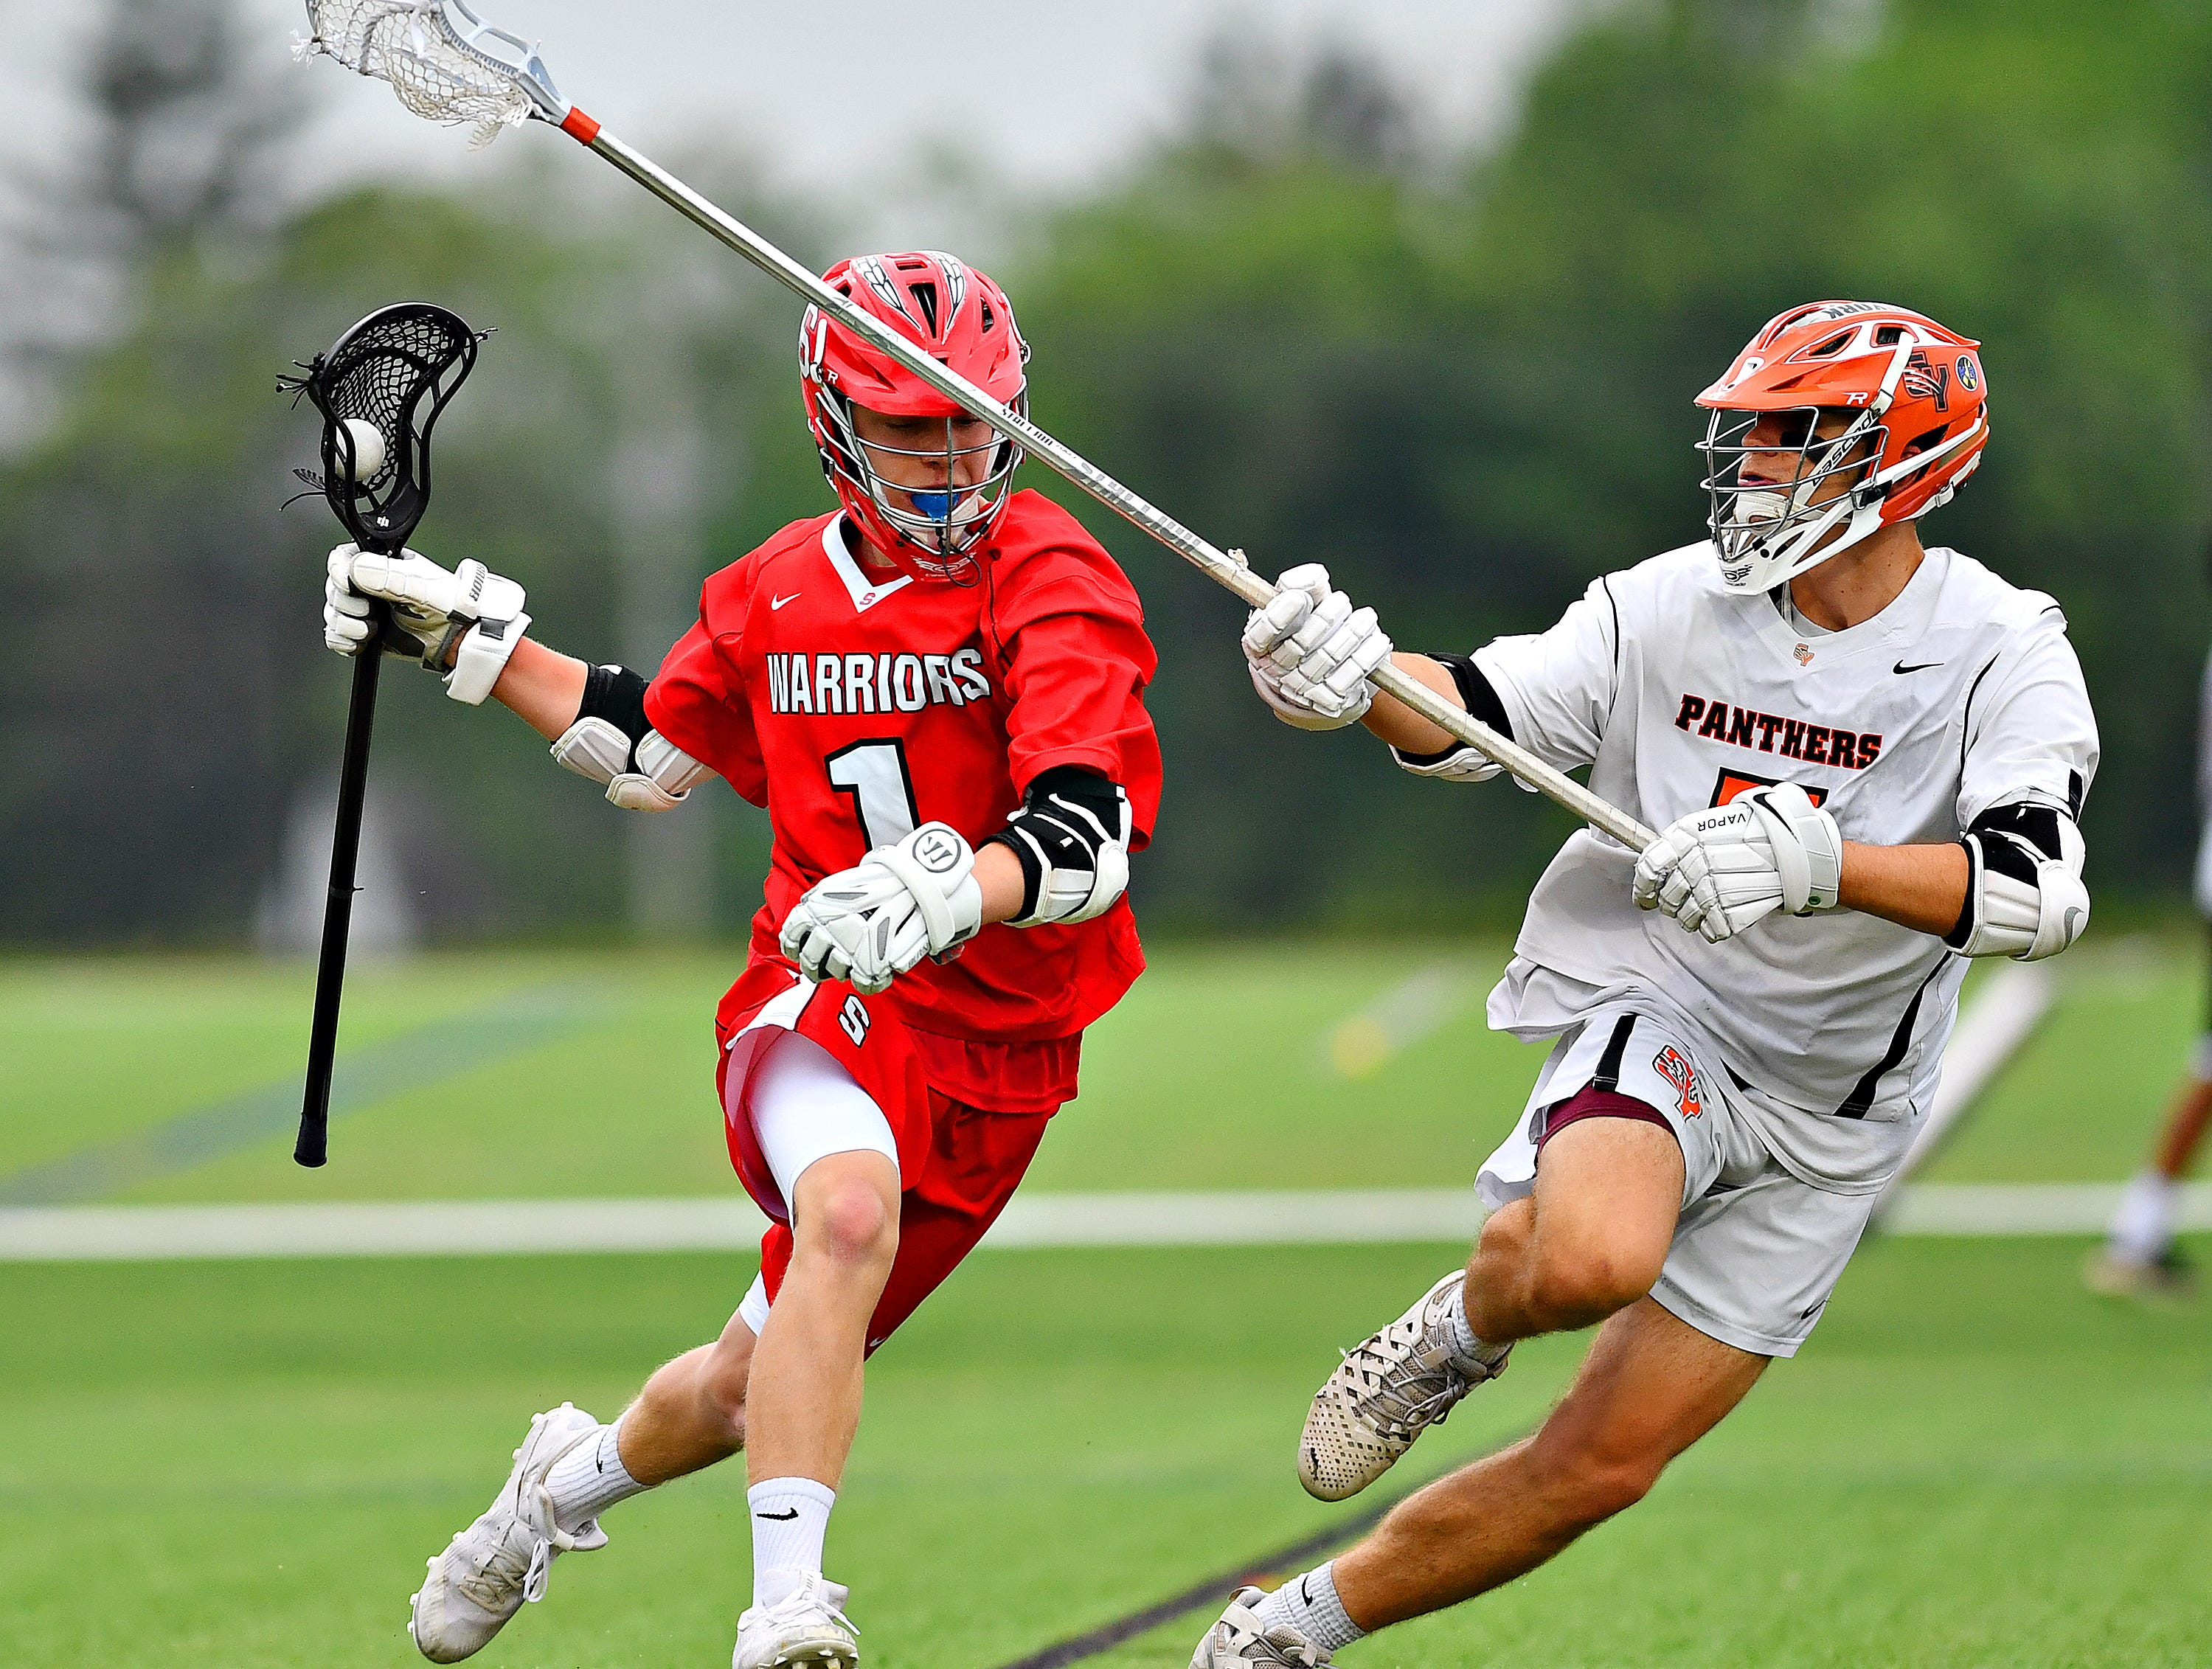 Susquehannock's Ben Tomasic, left, works to get around Central York's Robert Stockbower during boys lacrosse semifinal action at South Western High School in Hanover, Wednesday, May 8, 2019. Central York would win the game 10-4. Dawn J. Sagert photo